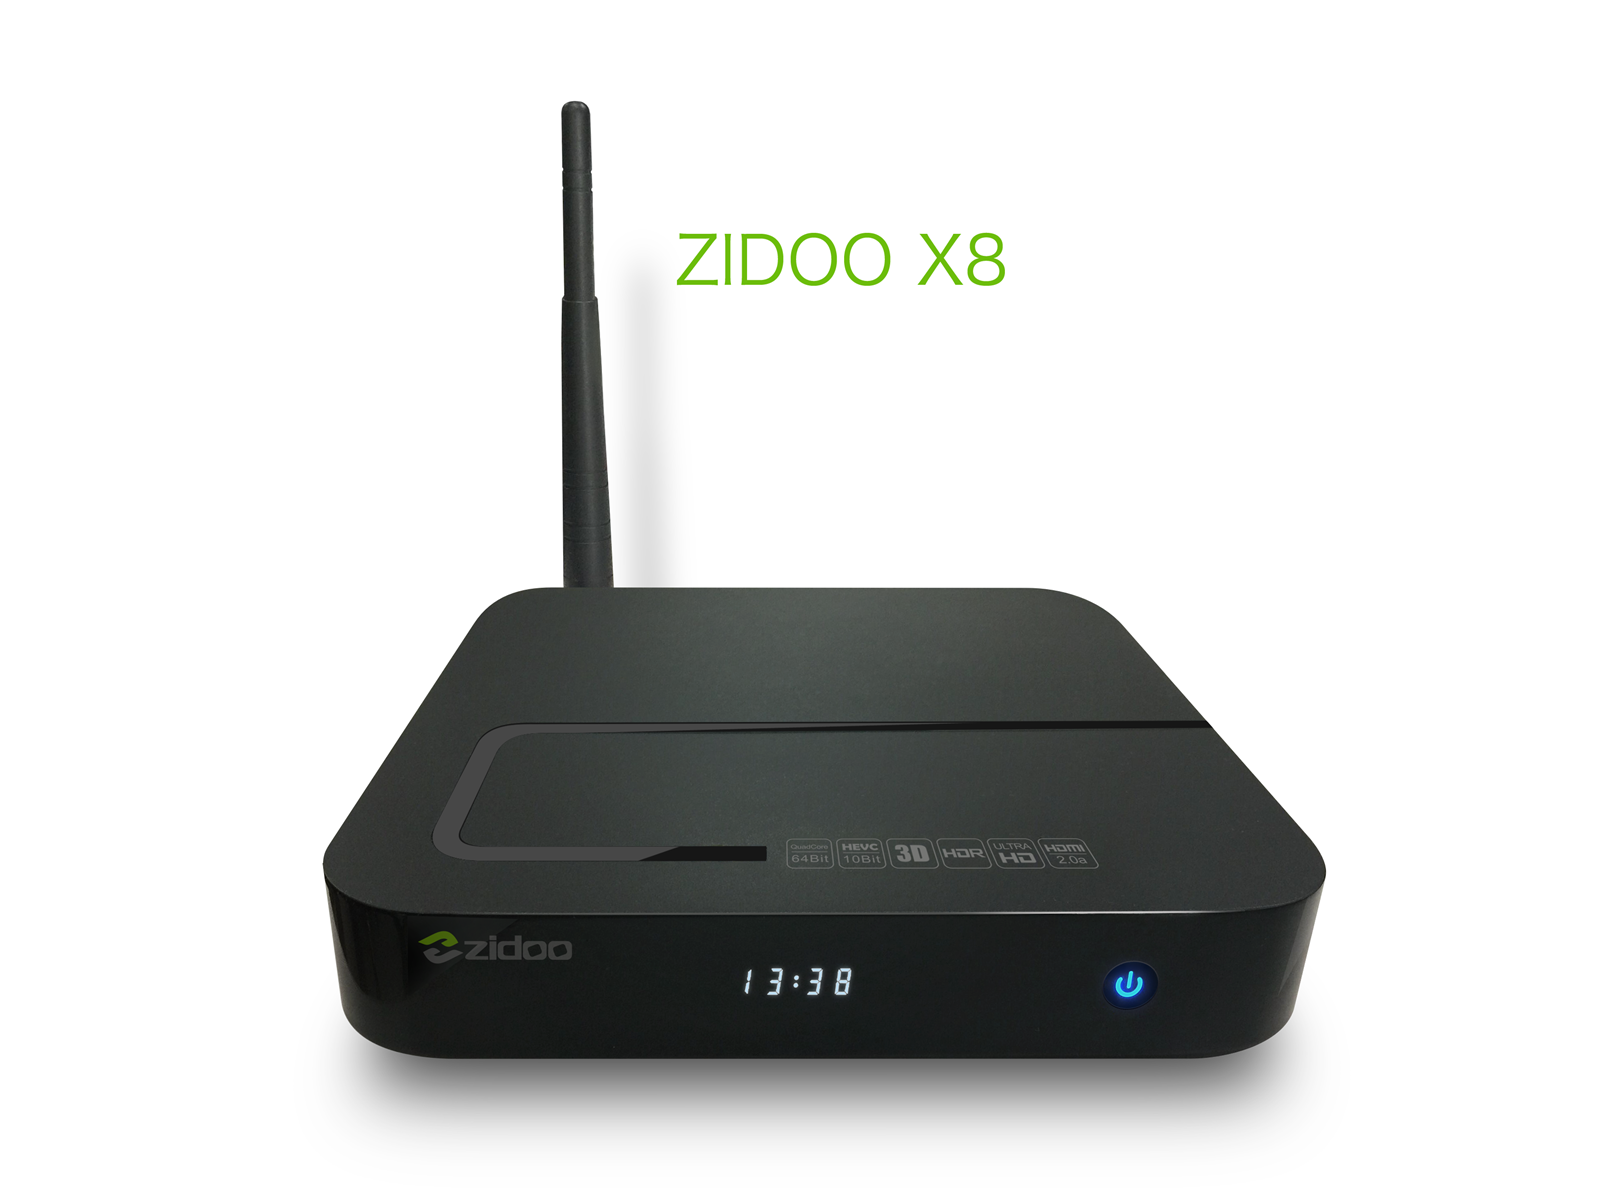 Zidoo X8 Mini PC